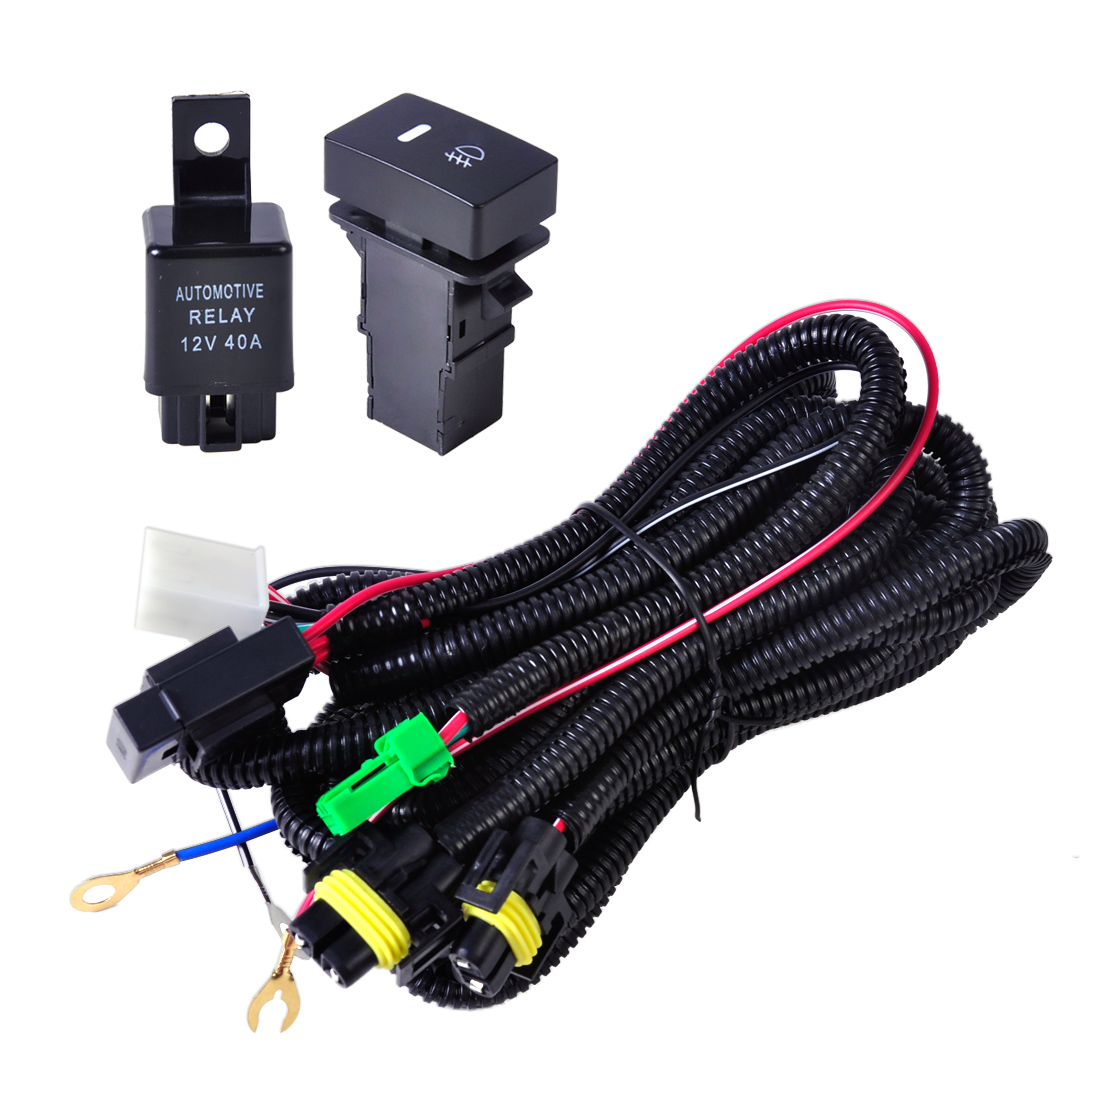 Citall H11 Fog Light Lamp Wiring Harness Sockets Wire Switch With 2006 Acura Tl Headlamp Led Indicators Automotive Relay For Ford Focus Nissan In From Automobiles